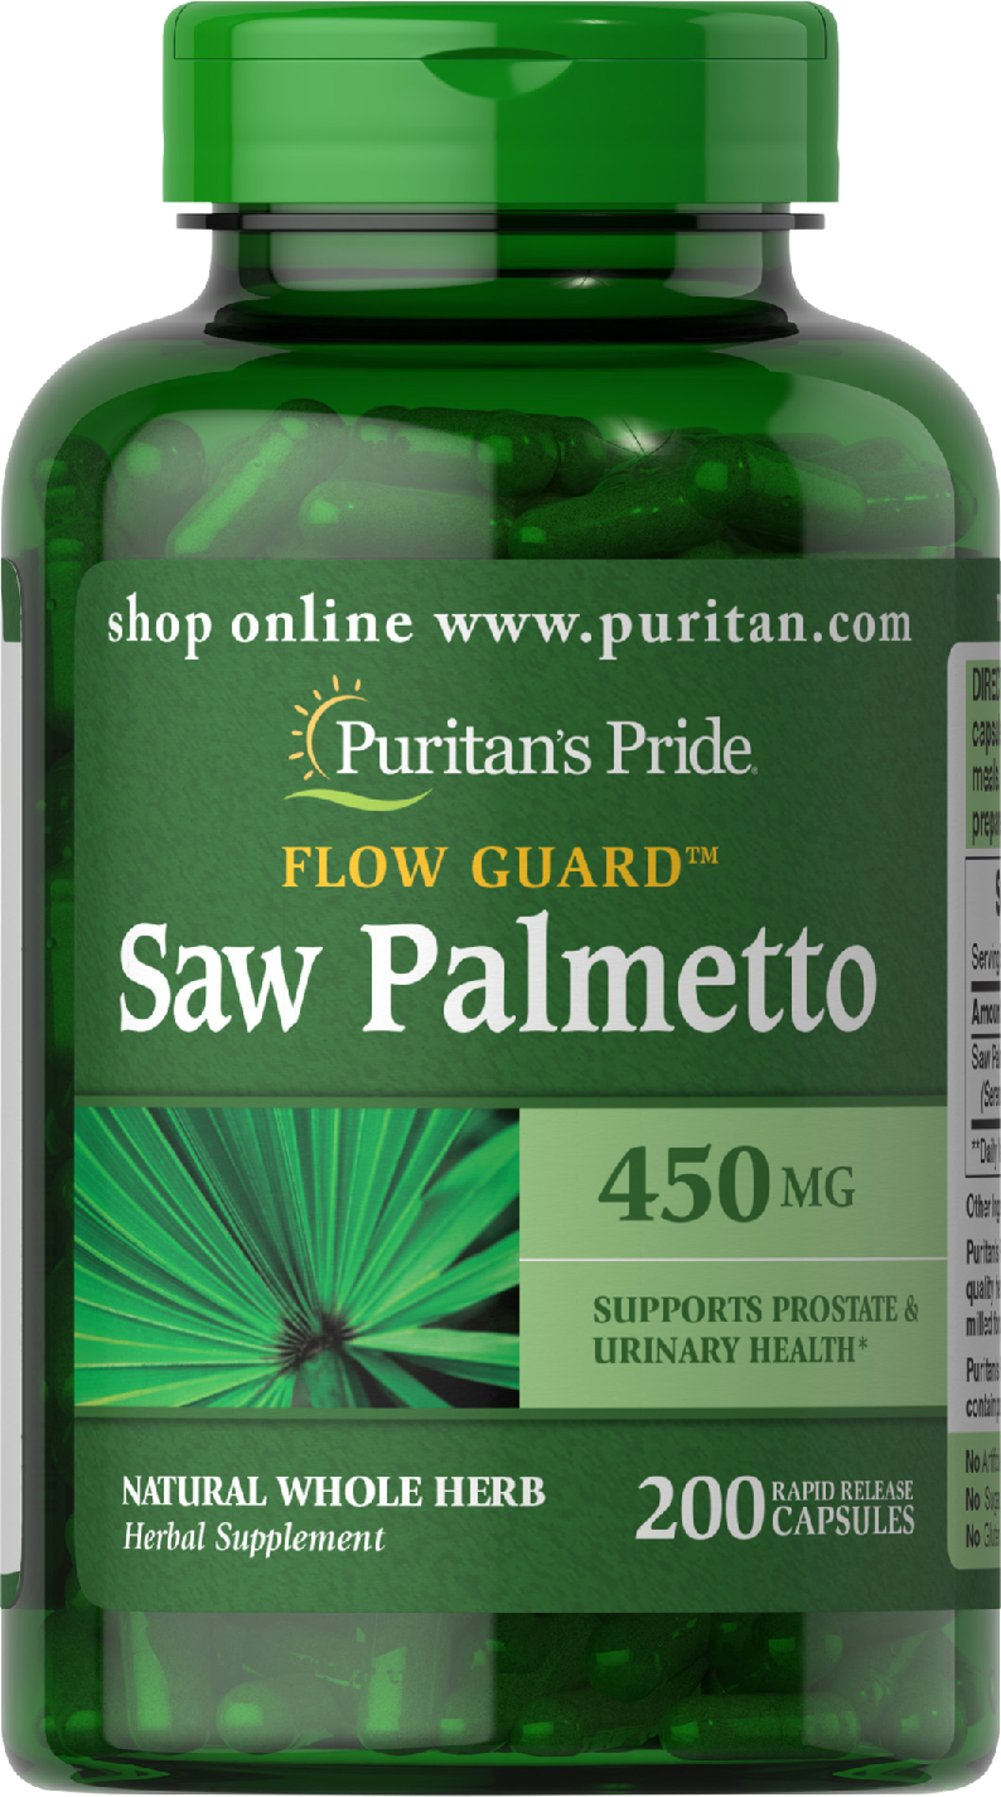 Saw Palmetto 450 mg <p>Men the world over are discovering the beneficial properties of Saw Palmetto. Saw Palmetto is the leading herb for men's health.** Saw Palmetto contains phytochemicals, which support prostate and urinary health in men.**</p><p>Our Saw Palmetto formula is fully assayed and tested. This means that you receive a dietary supplement that is superior in purity and quality.</p> 200 Capsules 450 mg $12.99